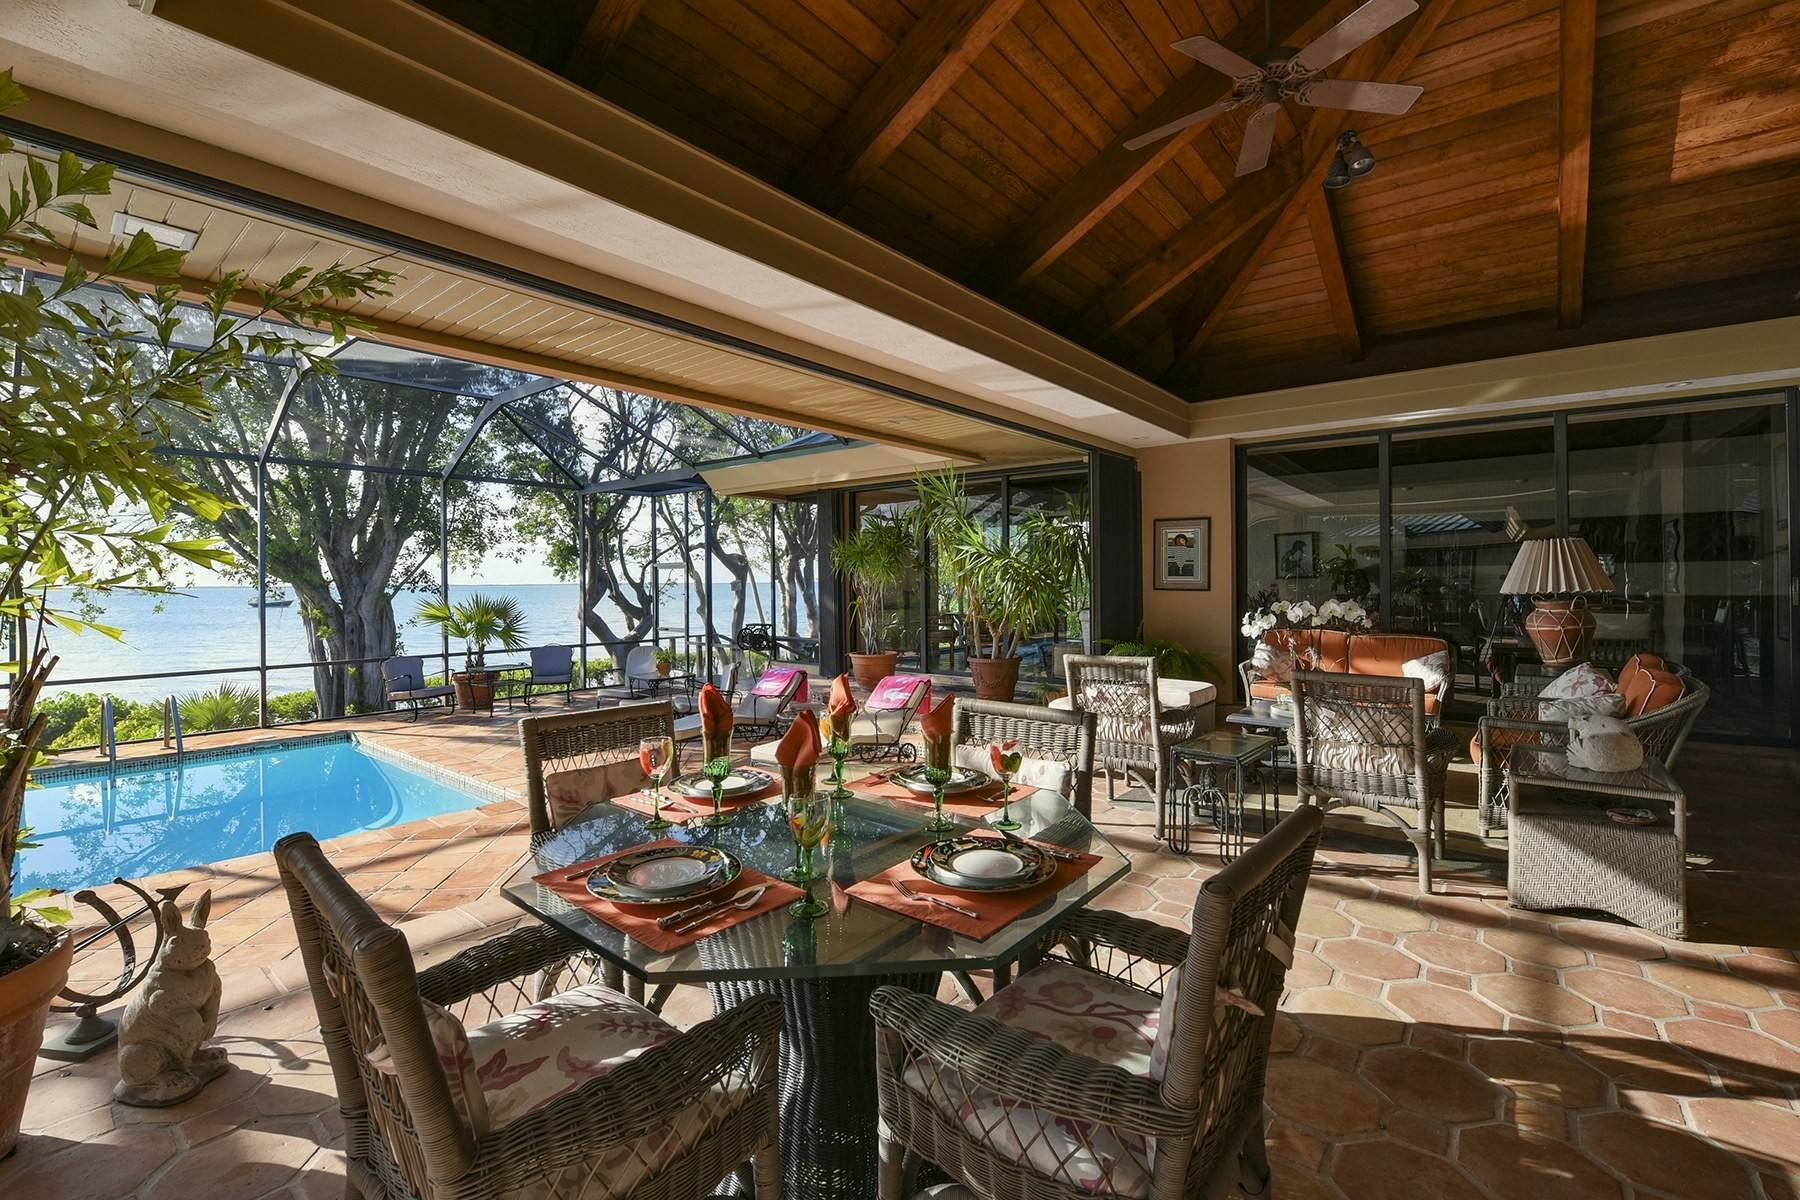 17. Property for Sale at 10 Cannon Point, Key Largo, FL 10 Cannon Point Key Largo, Florida 33037 United States